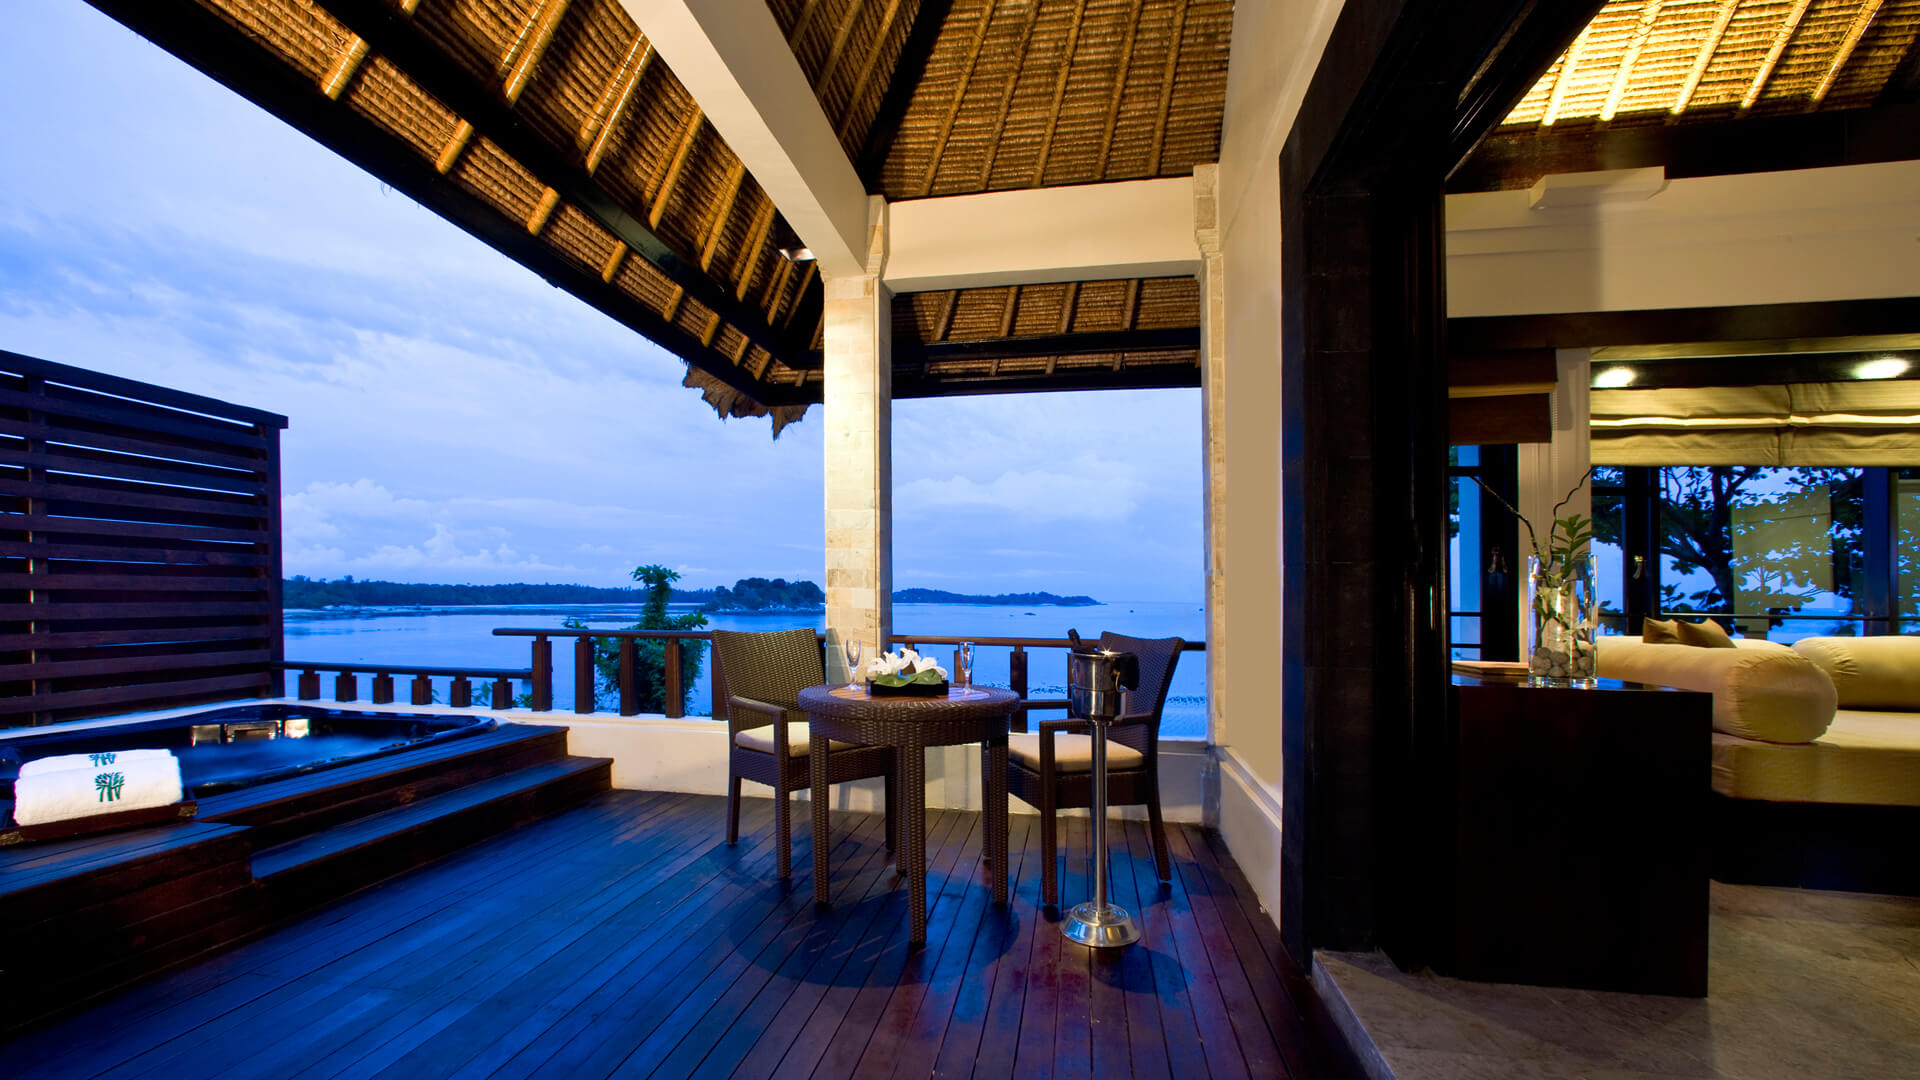 ONE-BEDROOM BAYFRONT VILLAS (OUTDOOR DECK)